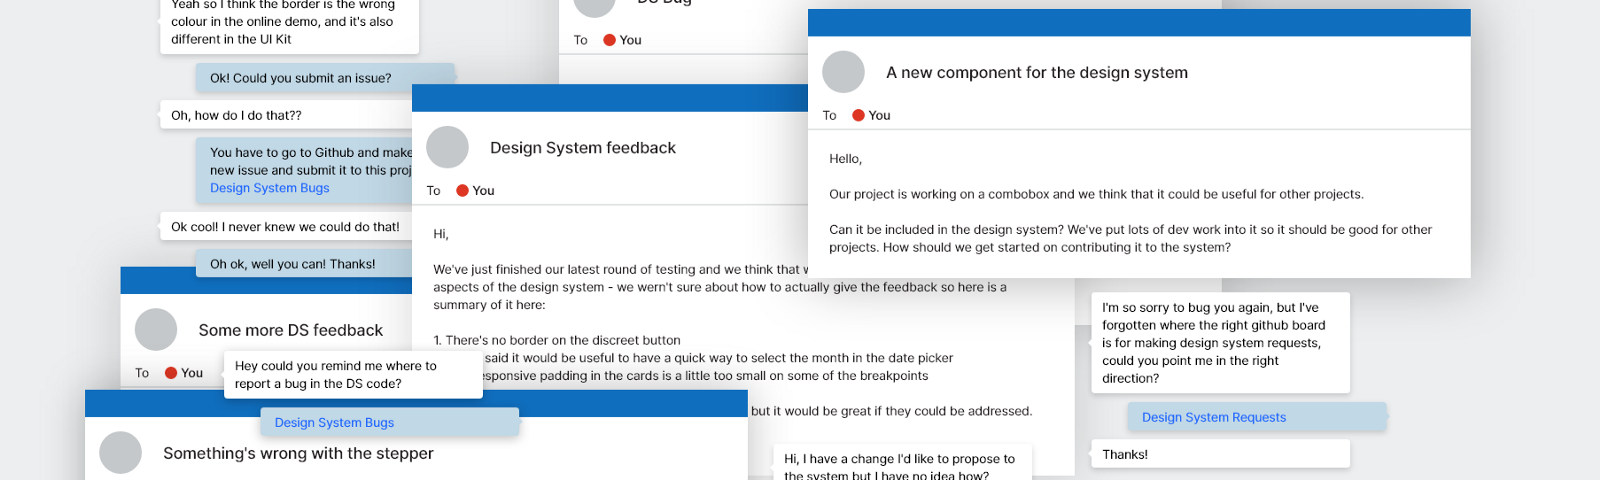 Collage of confused Design System messages